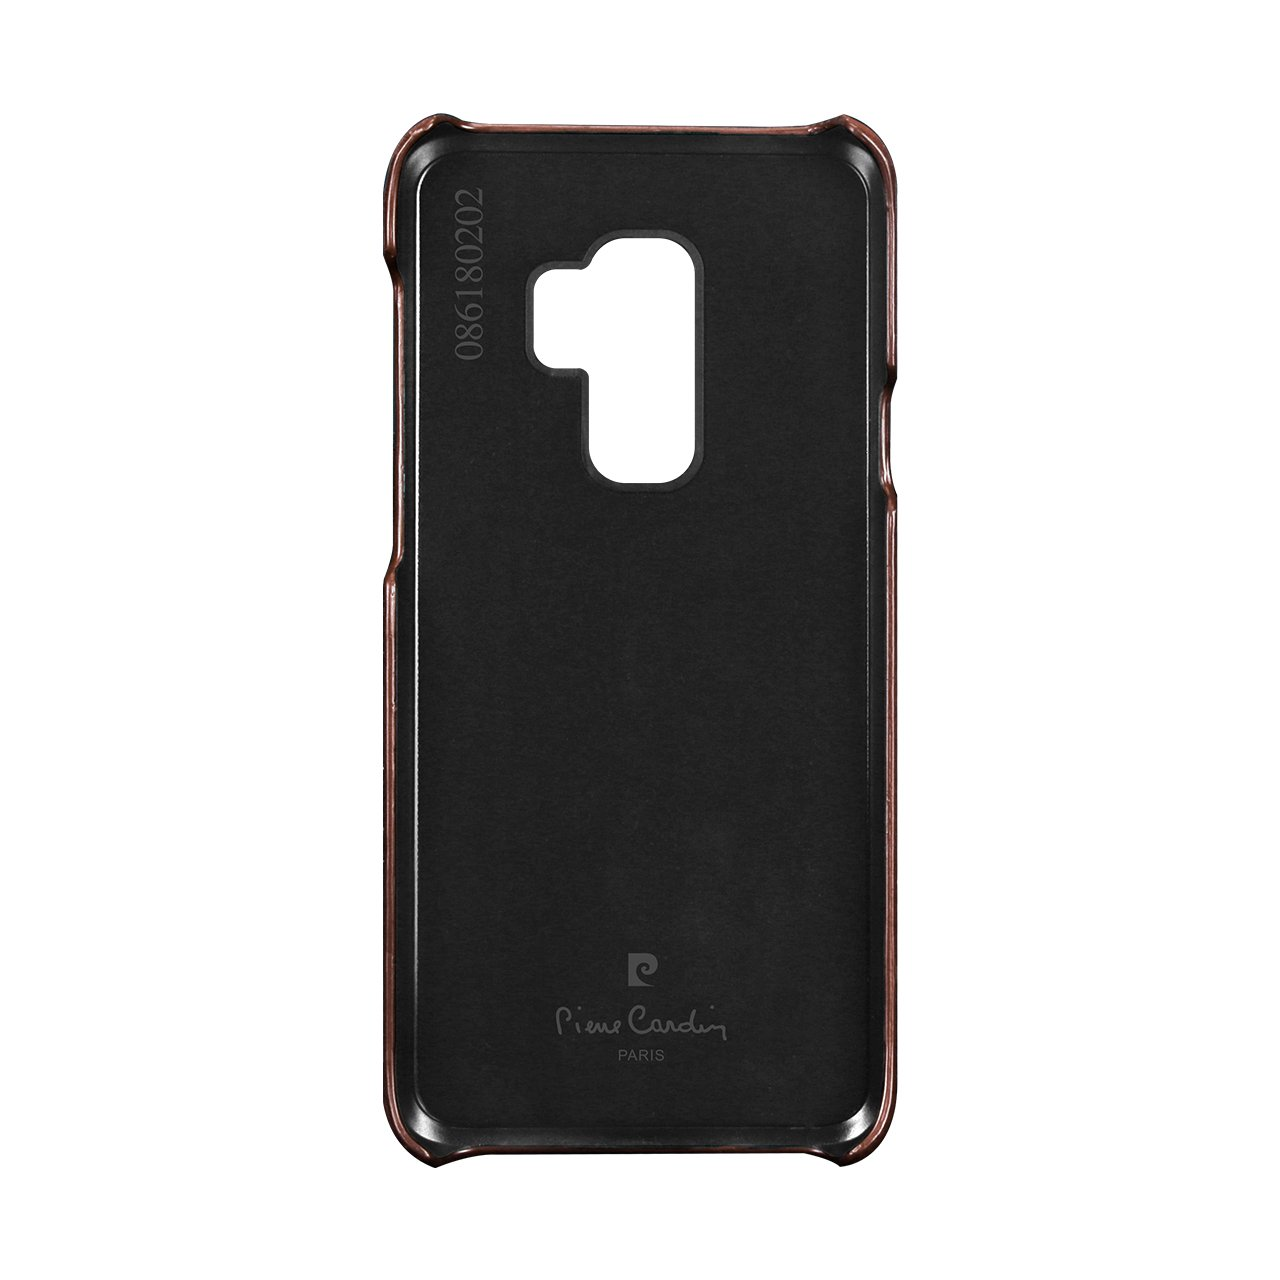 Samsung Galaxy S9 Plus,S9+ Leather Case,Pierre Cardin Premium Genuine Cow Leather Back Case Snap Cover Classical Business Style fit for Samsung Galaxy S9 Plus,S9+ (Dark Brown)